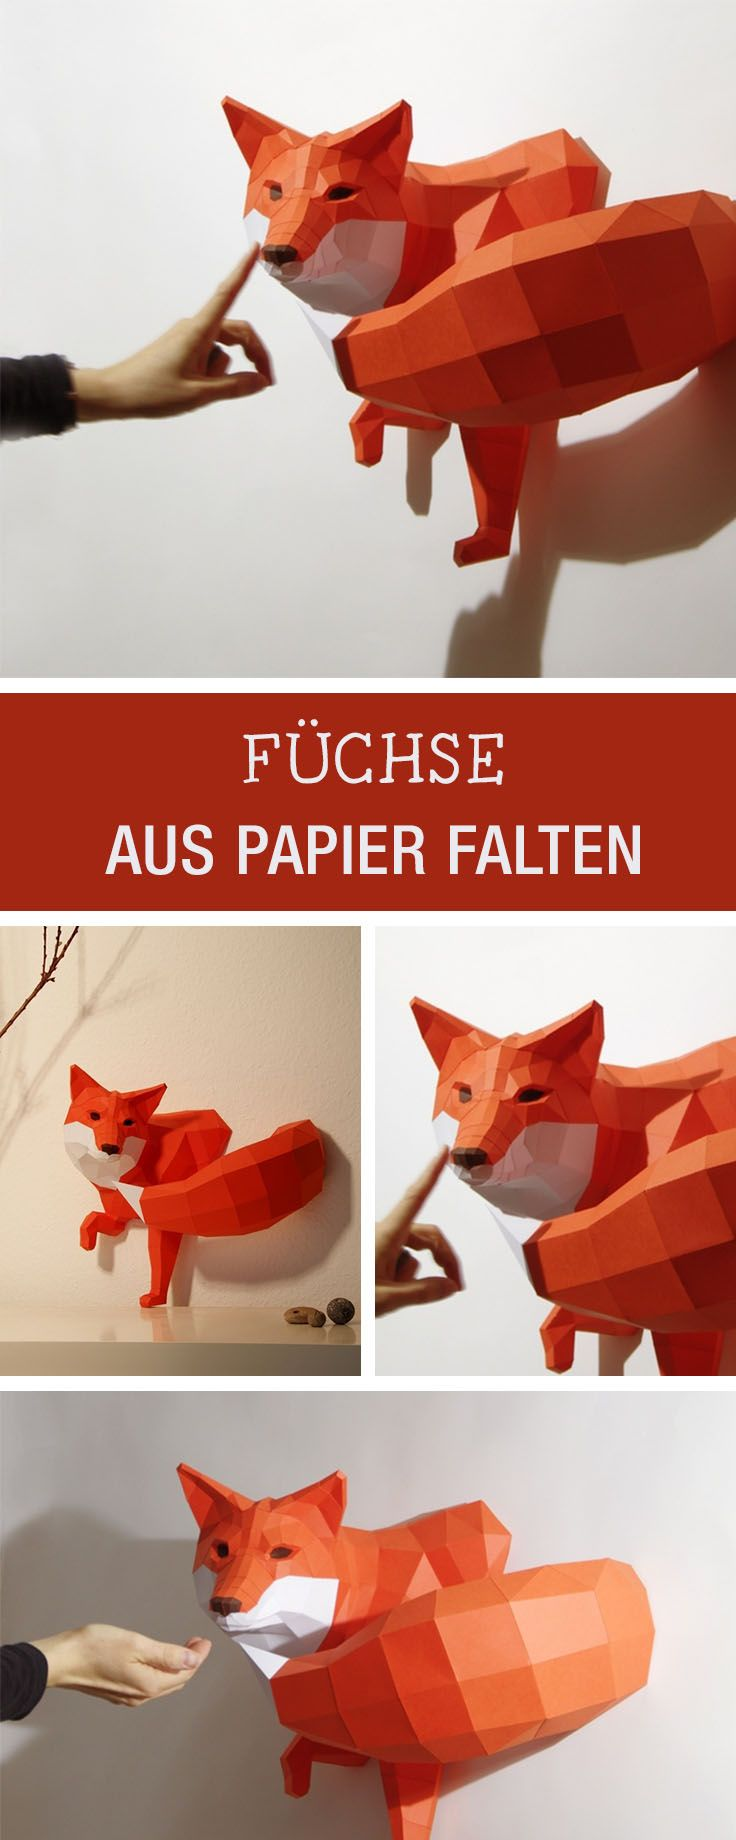 DIY für einen Origami-Fuchs als originelle Wohndeko / craft an origami fox made of paper, home decor via DaWanda.com